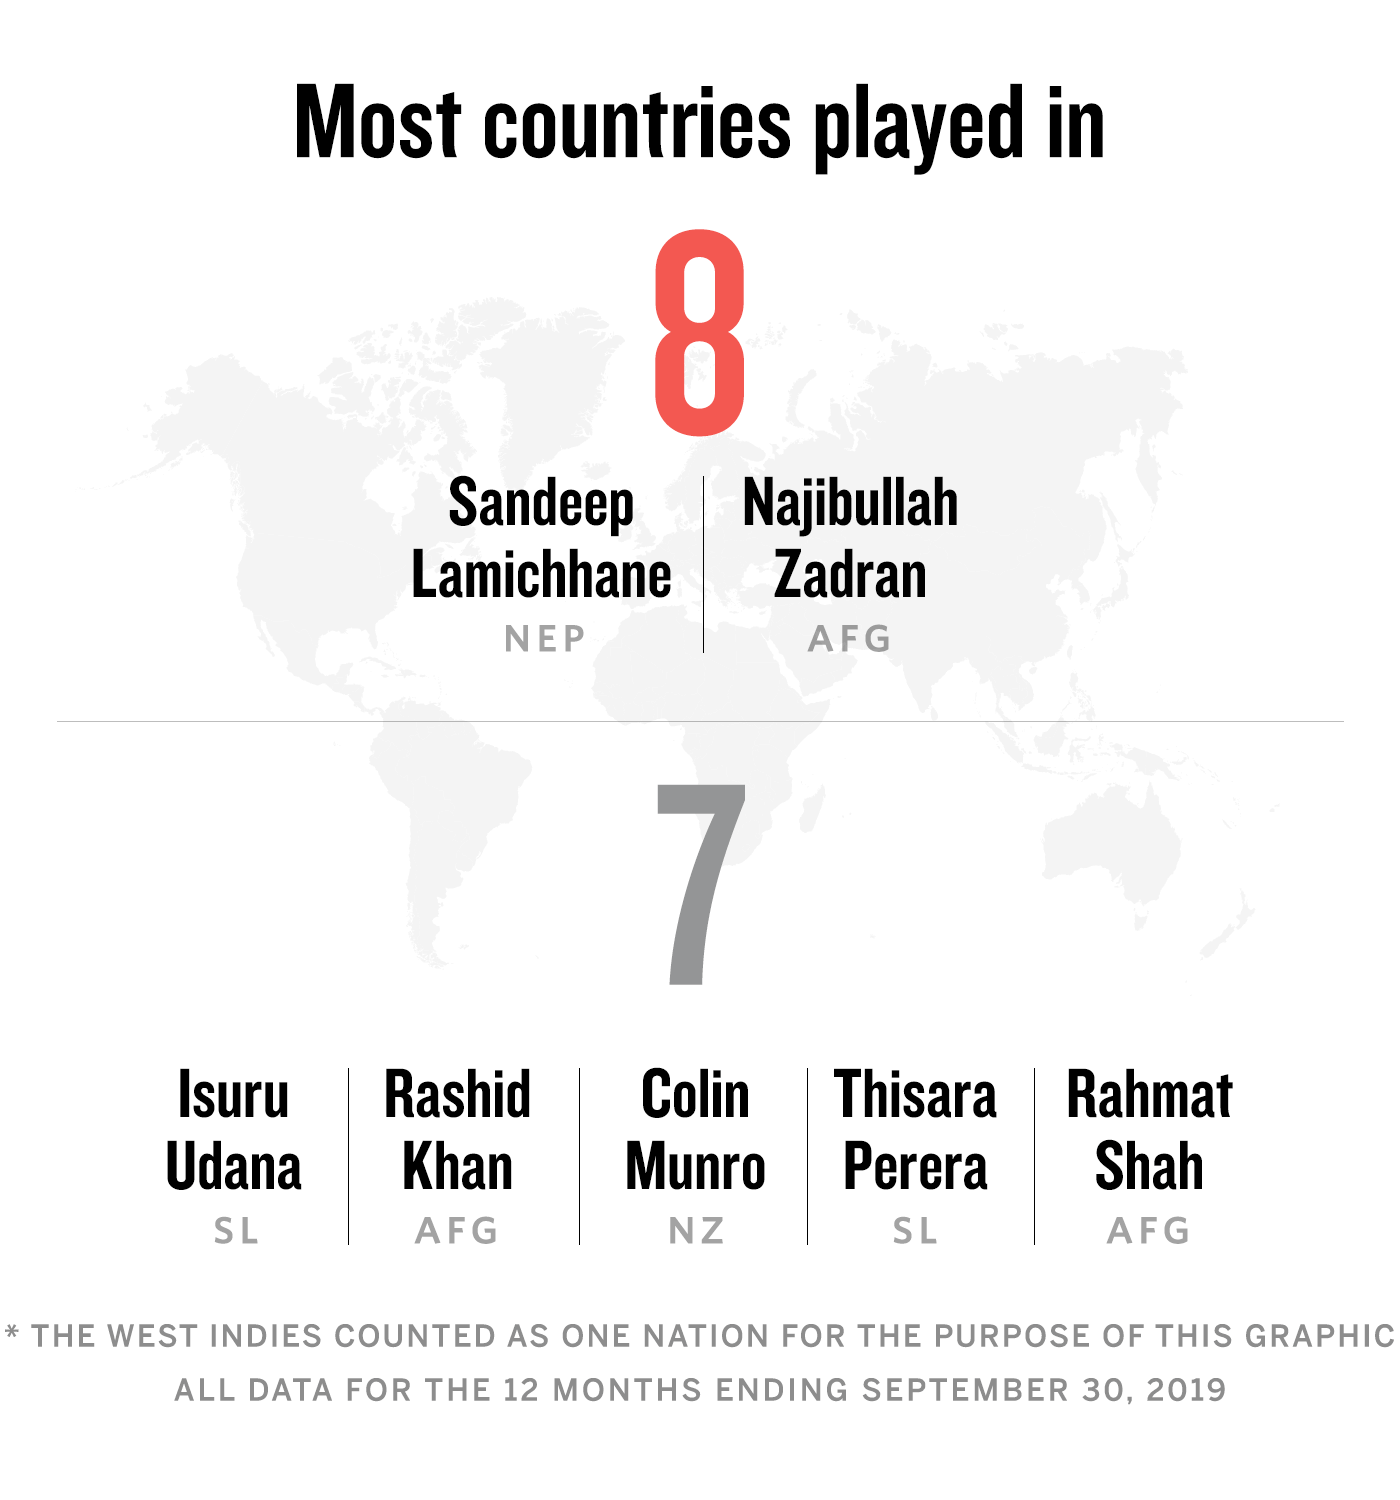 Most countries